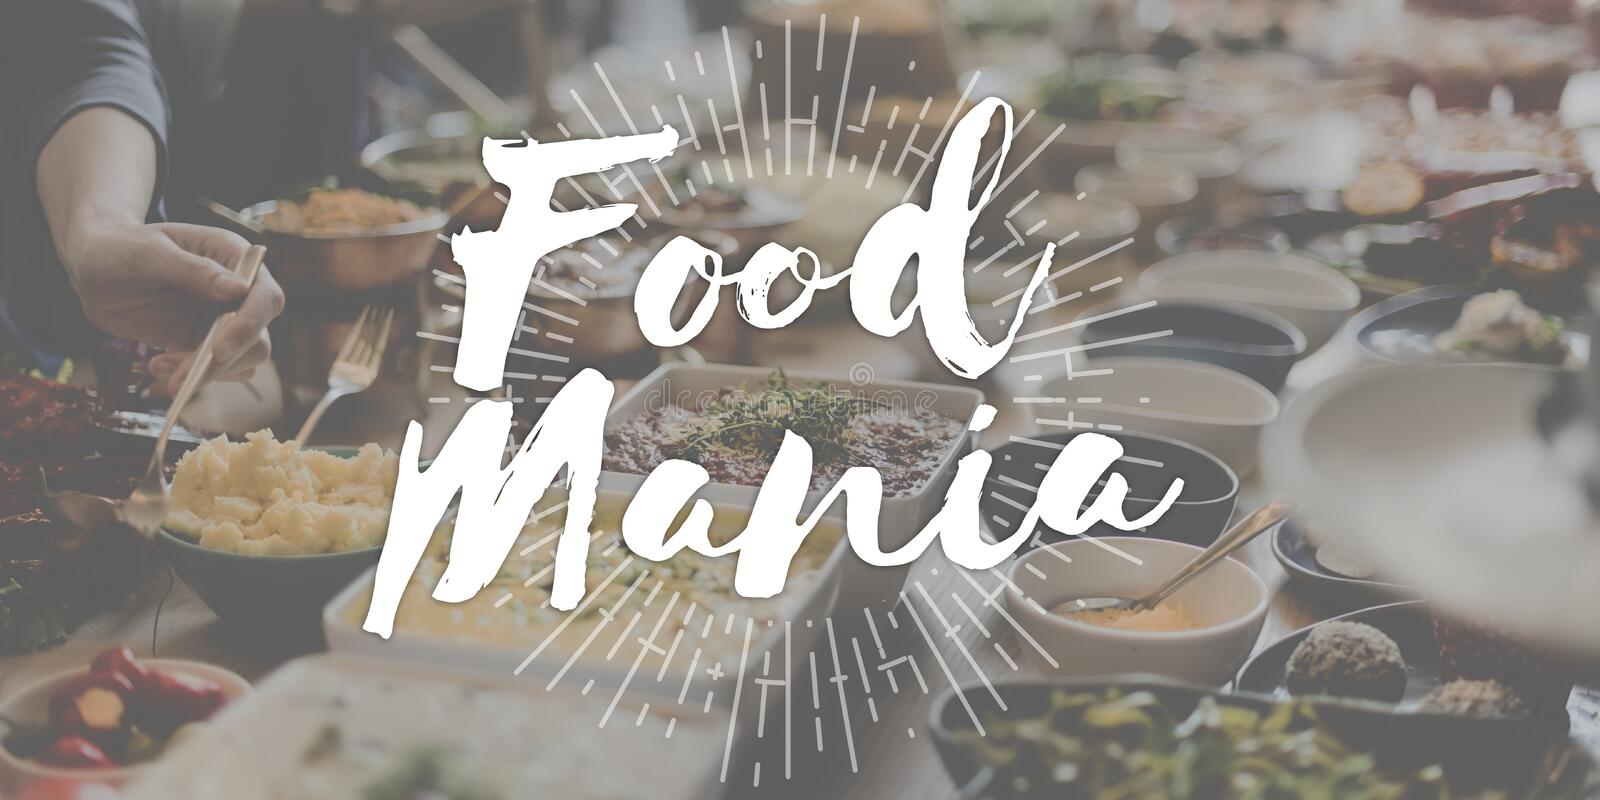 Food Mania Foodie Food Lover Gourmet Cuisine Tasty Delicious Con. Cept royalty free stock images